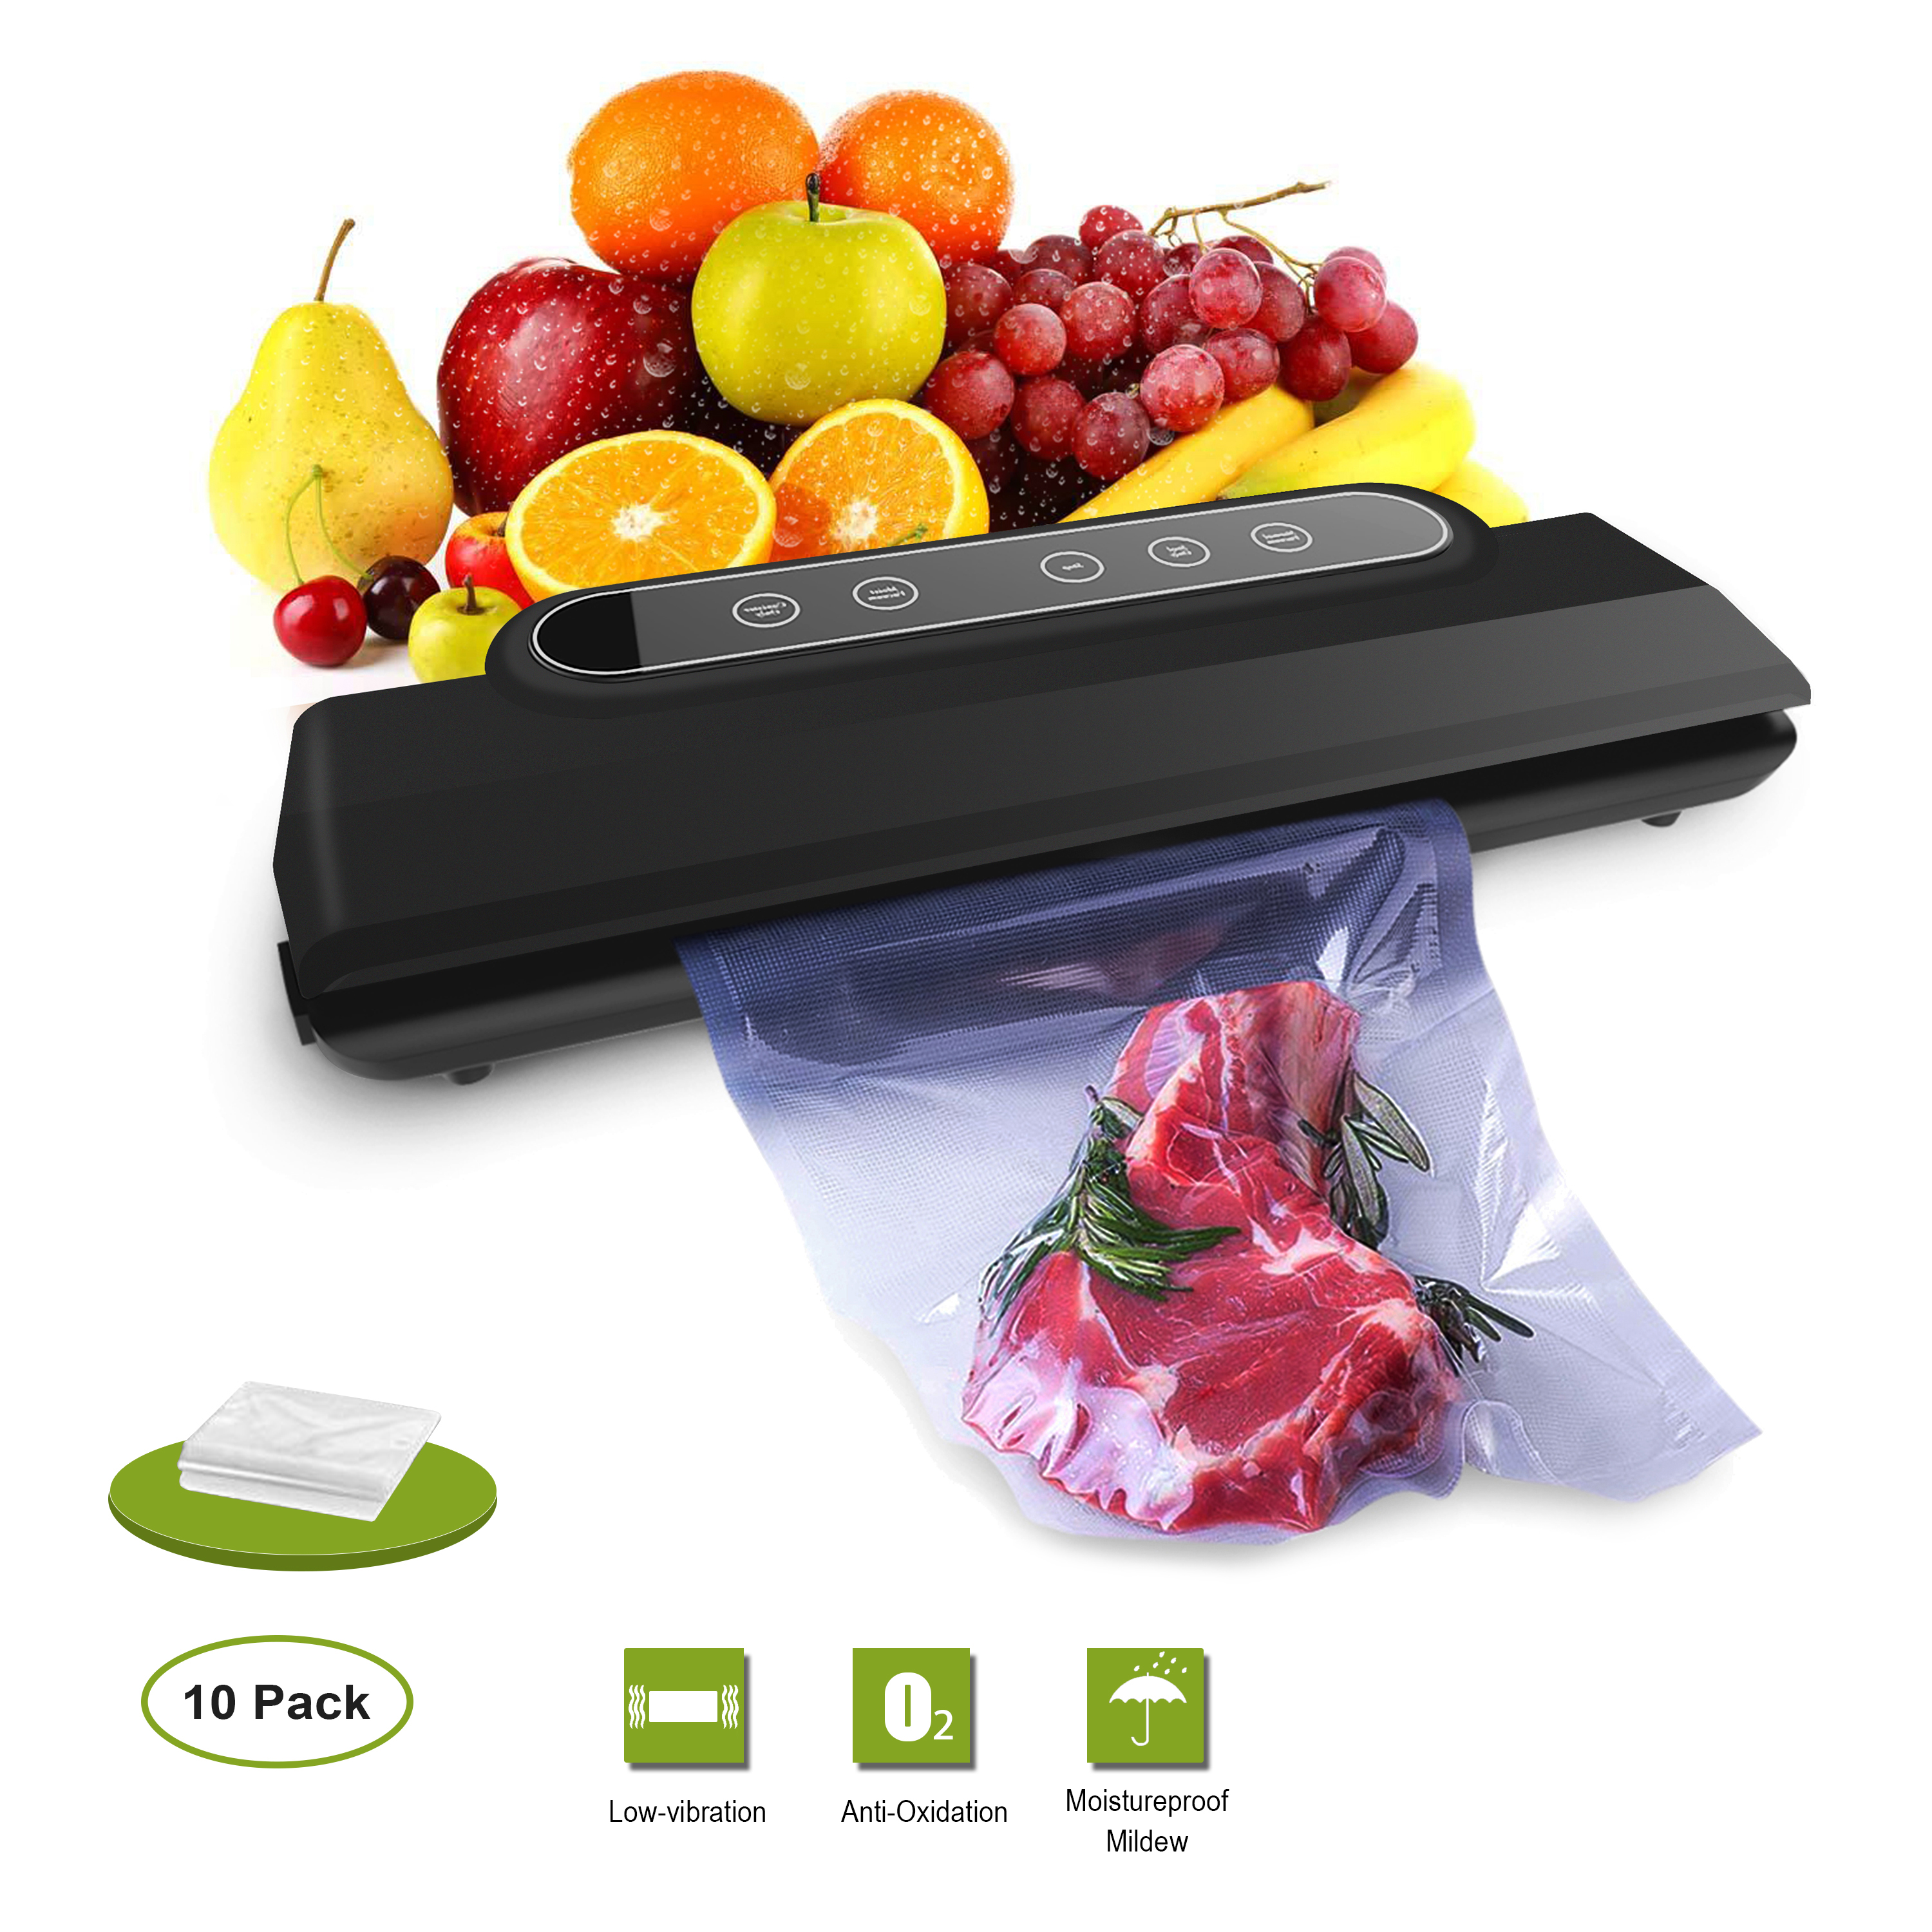 Vacuum Sealer Machine, Vacuum Sealing System and Handheld Sealer for Food Preservation Plus Vacuum Sealer Bags